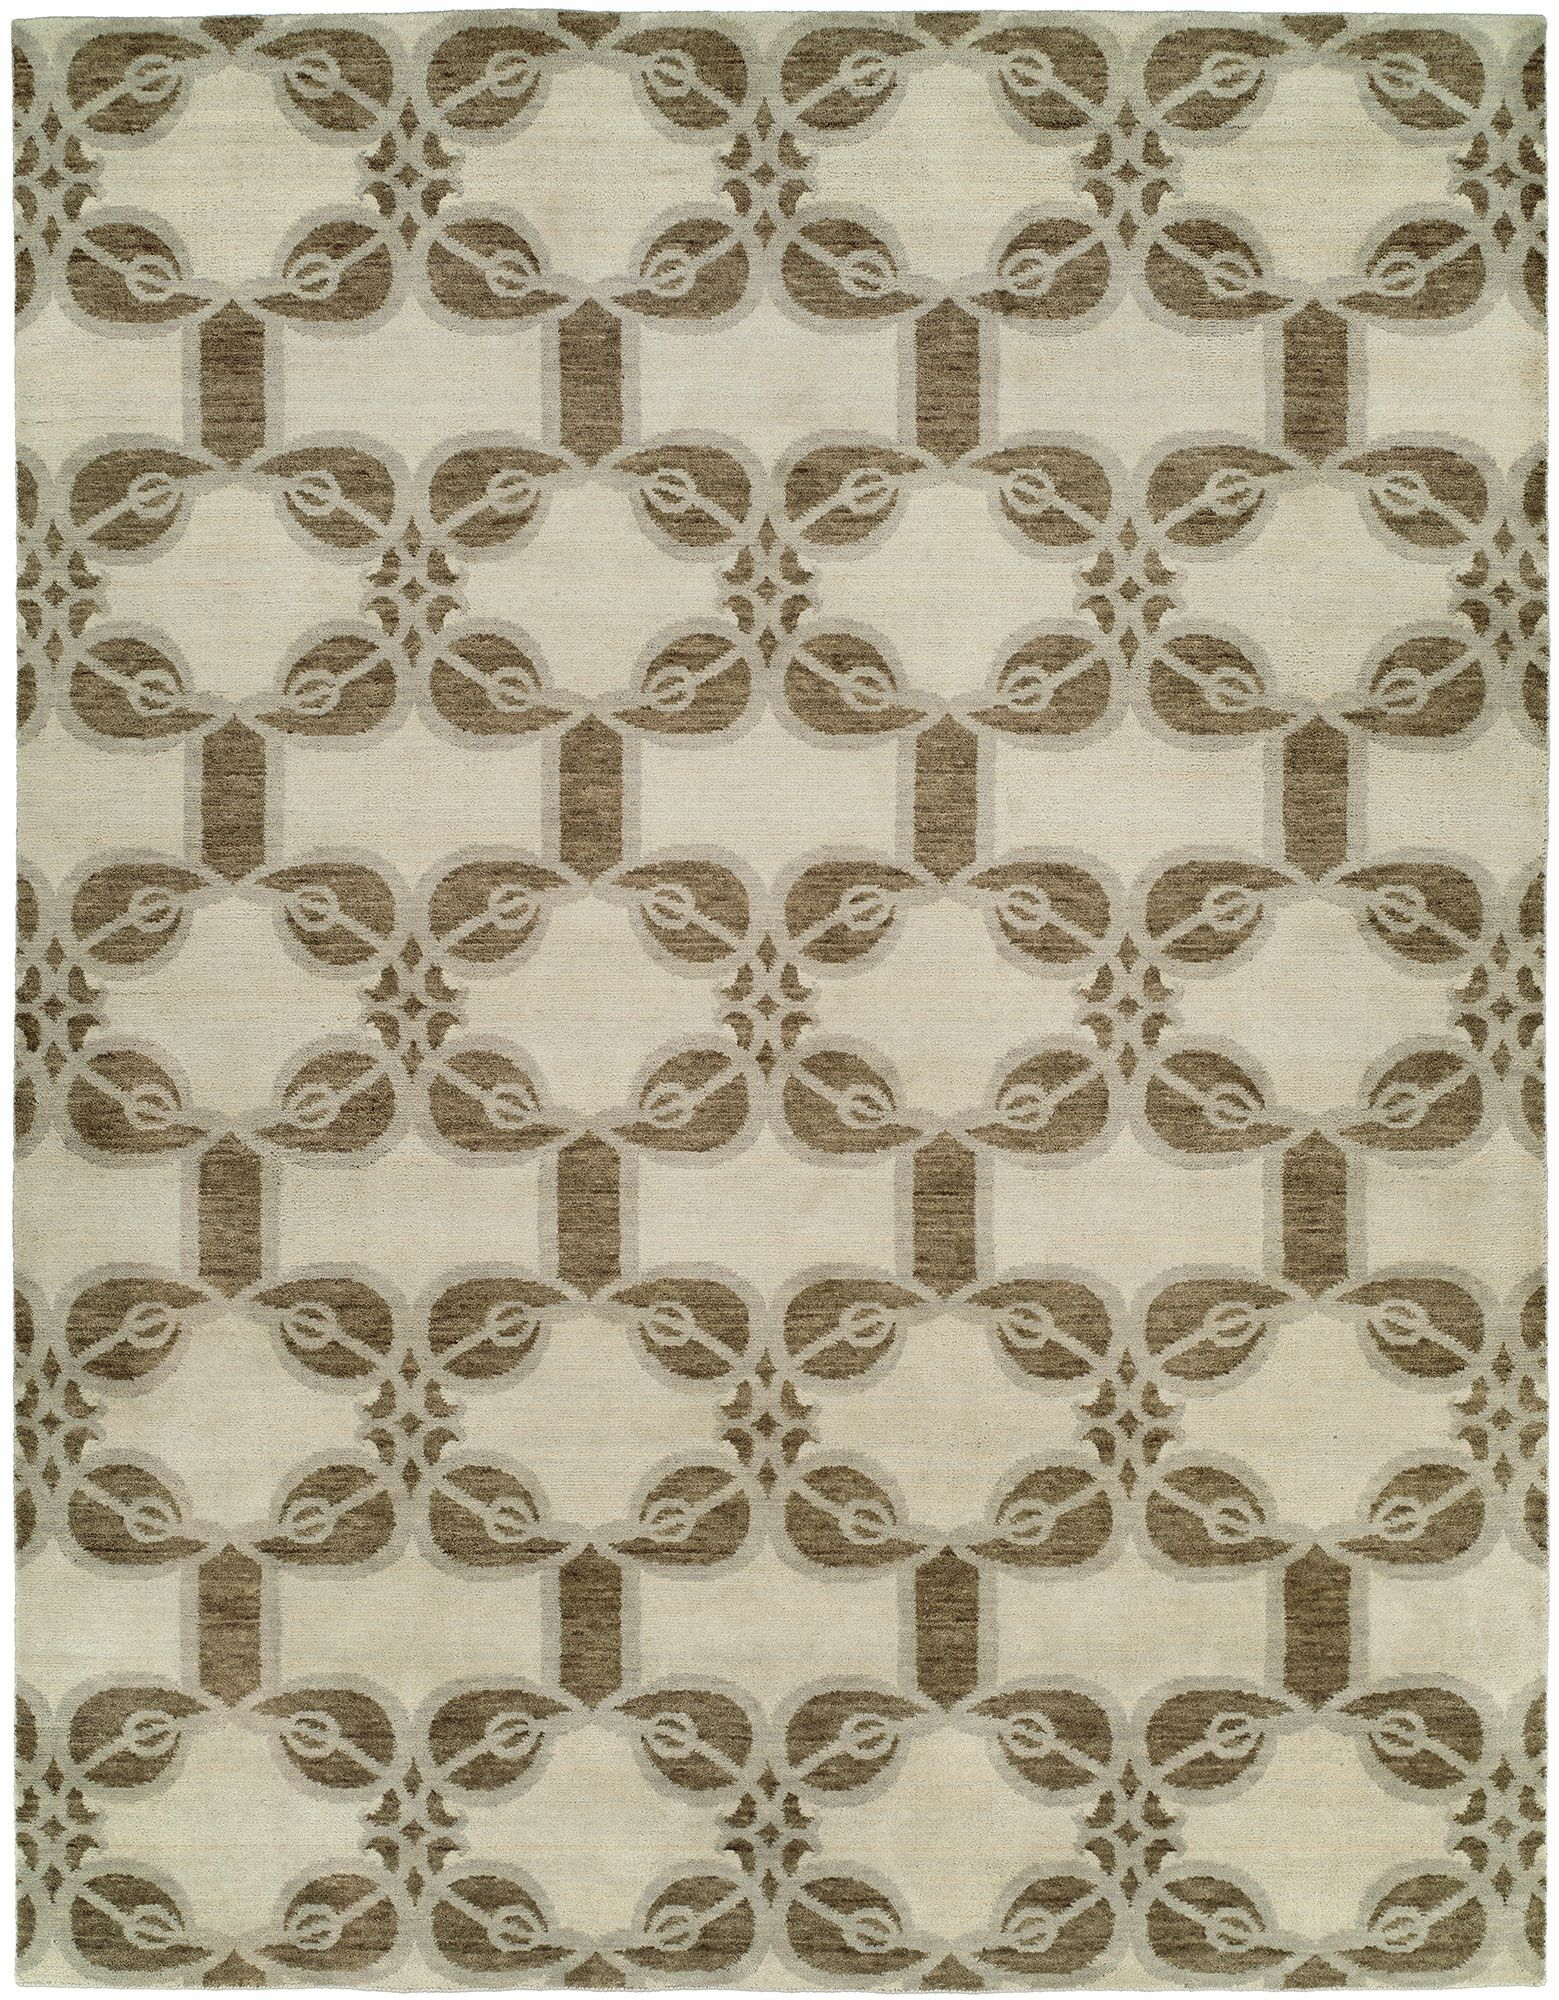 Guilaine Hand Knotted Wool Ivory Area Rug Rug Size: Rectangle 6' x 9'